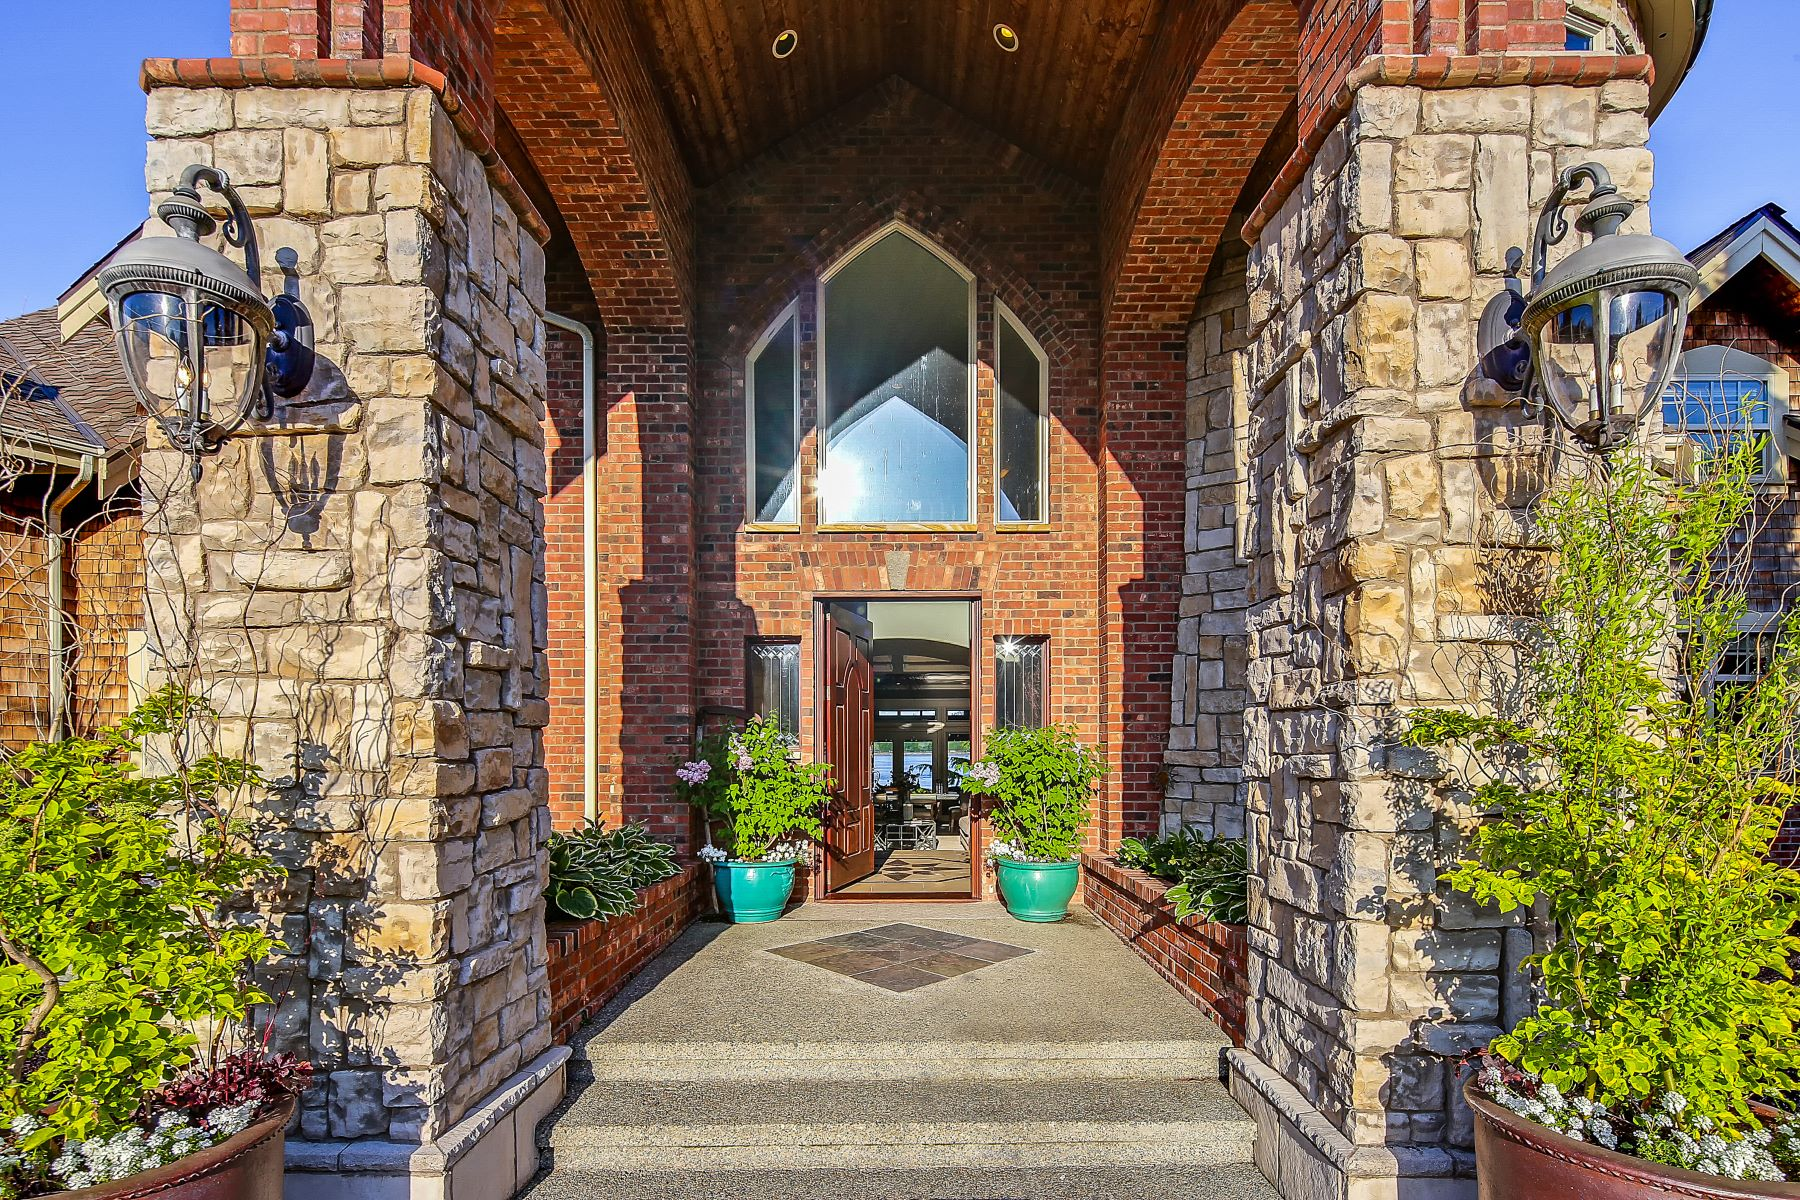 Additional photo for property listing at Paradise Passage Estate & Stables 1255 14th Ave Fox Island, Washington 98333 United States